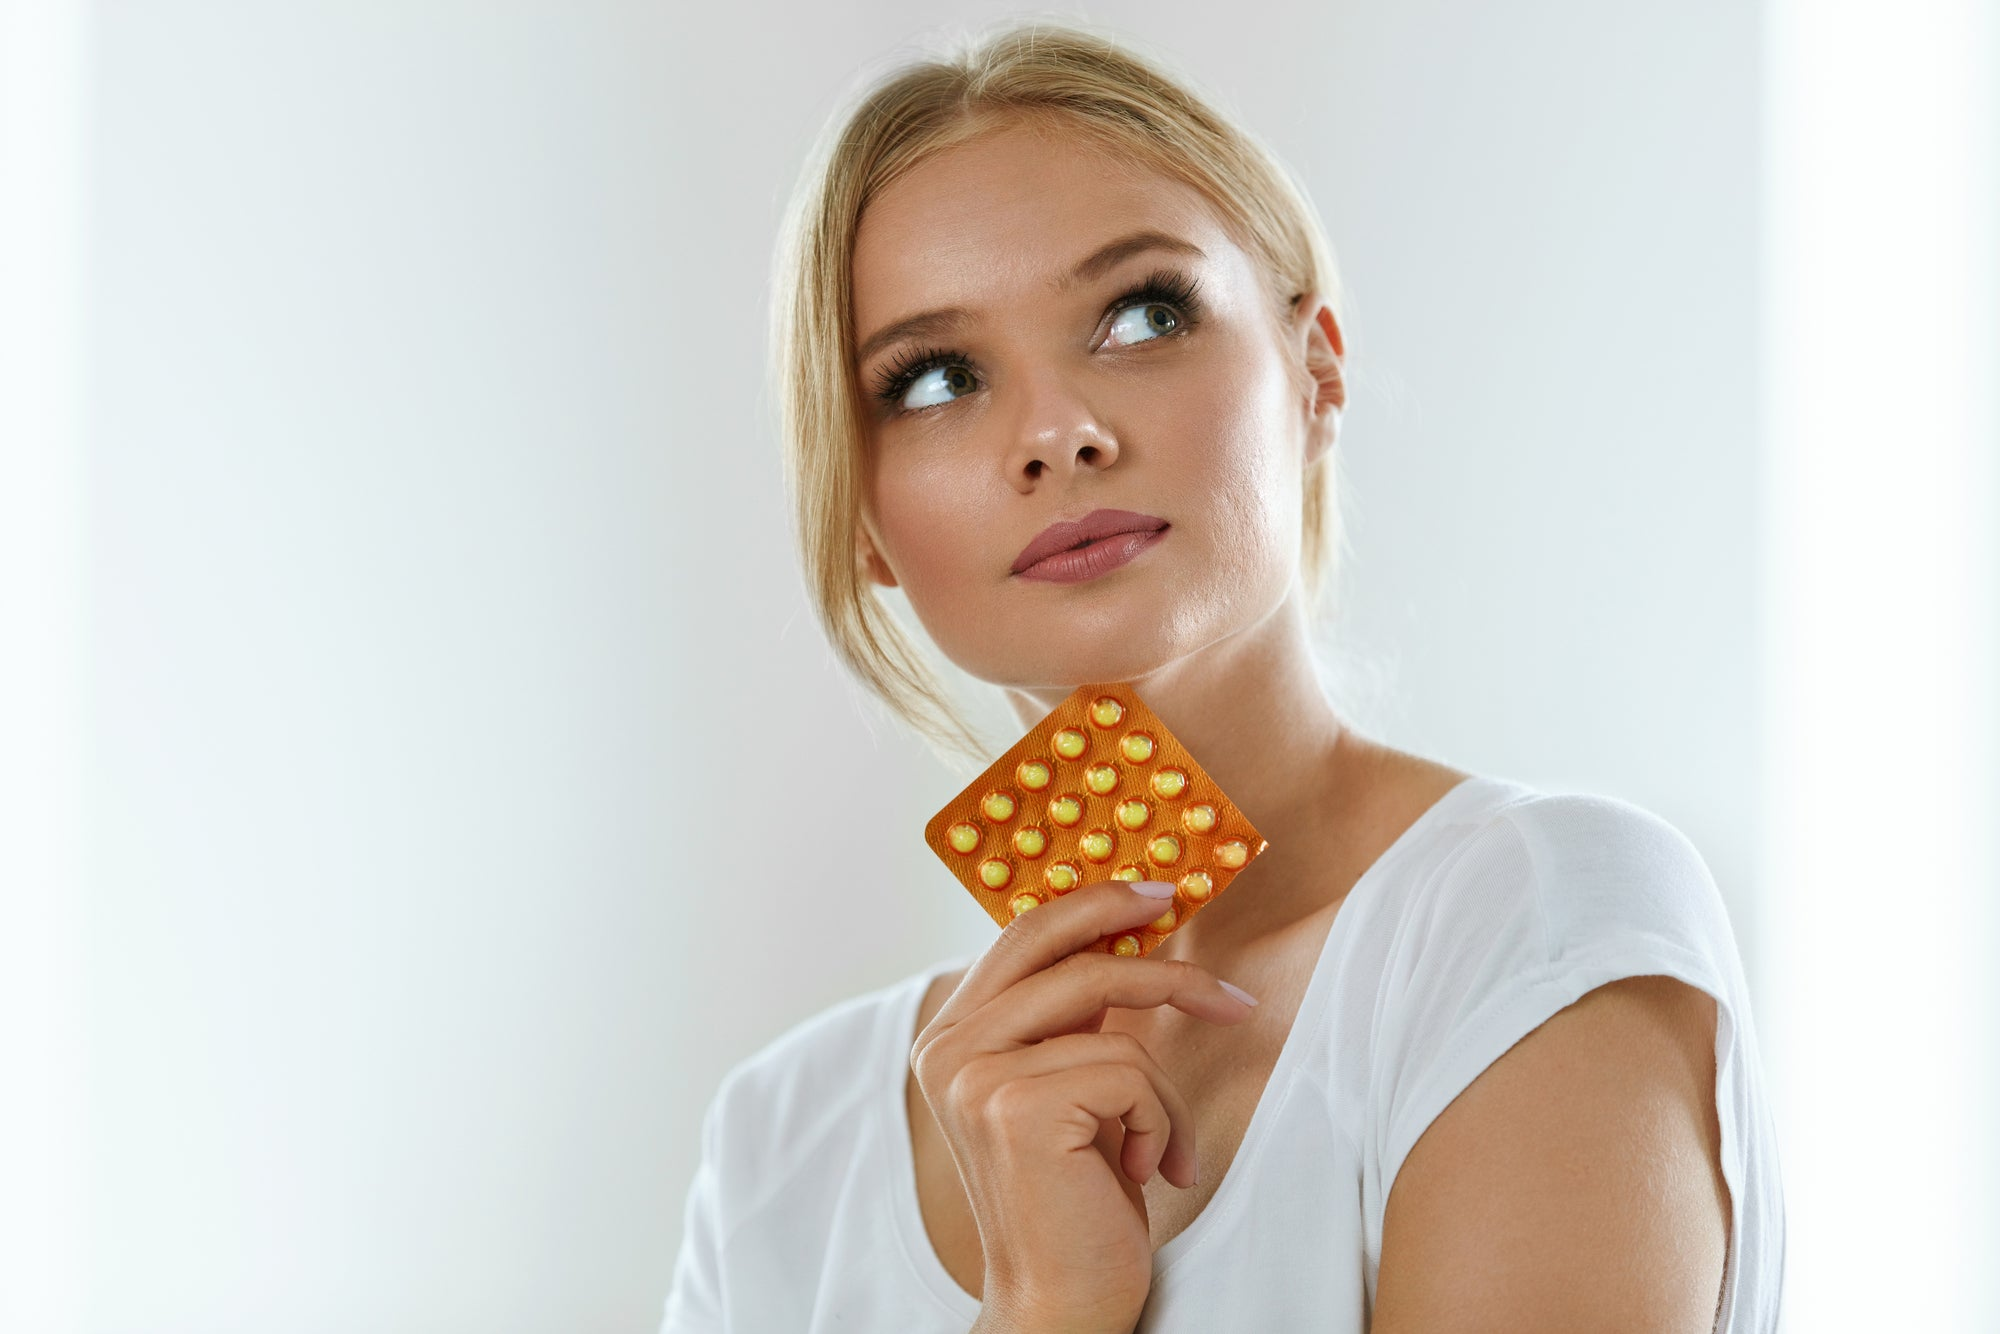 4 Tips To Improve Fertility When Coming Off the Contraceptive Pill.